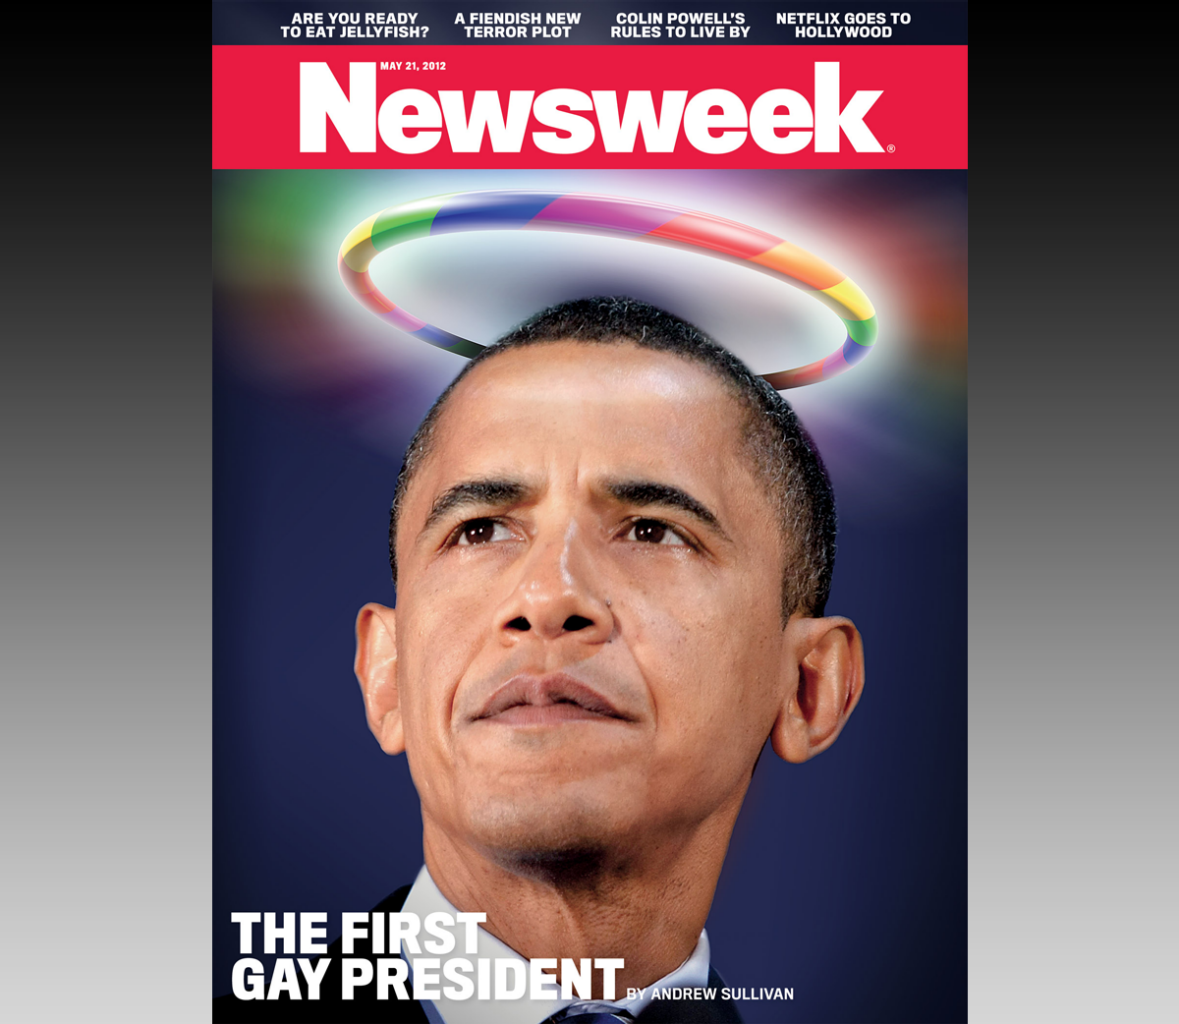 http://s.newsweek.com/sites/www.newsweek.com/files/2012/05/13/1337256000000.cached_0.png